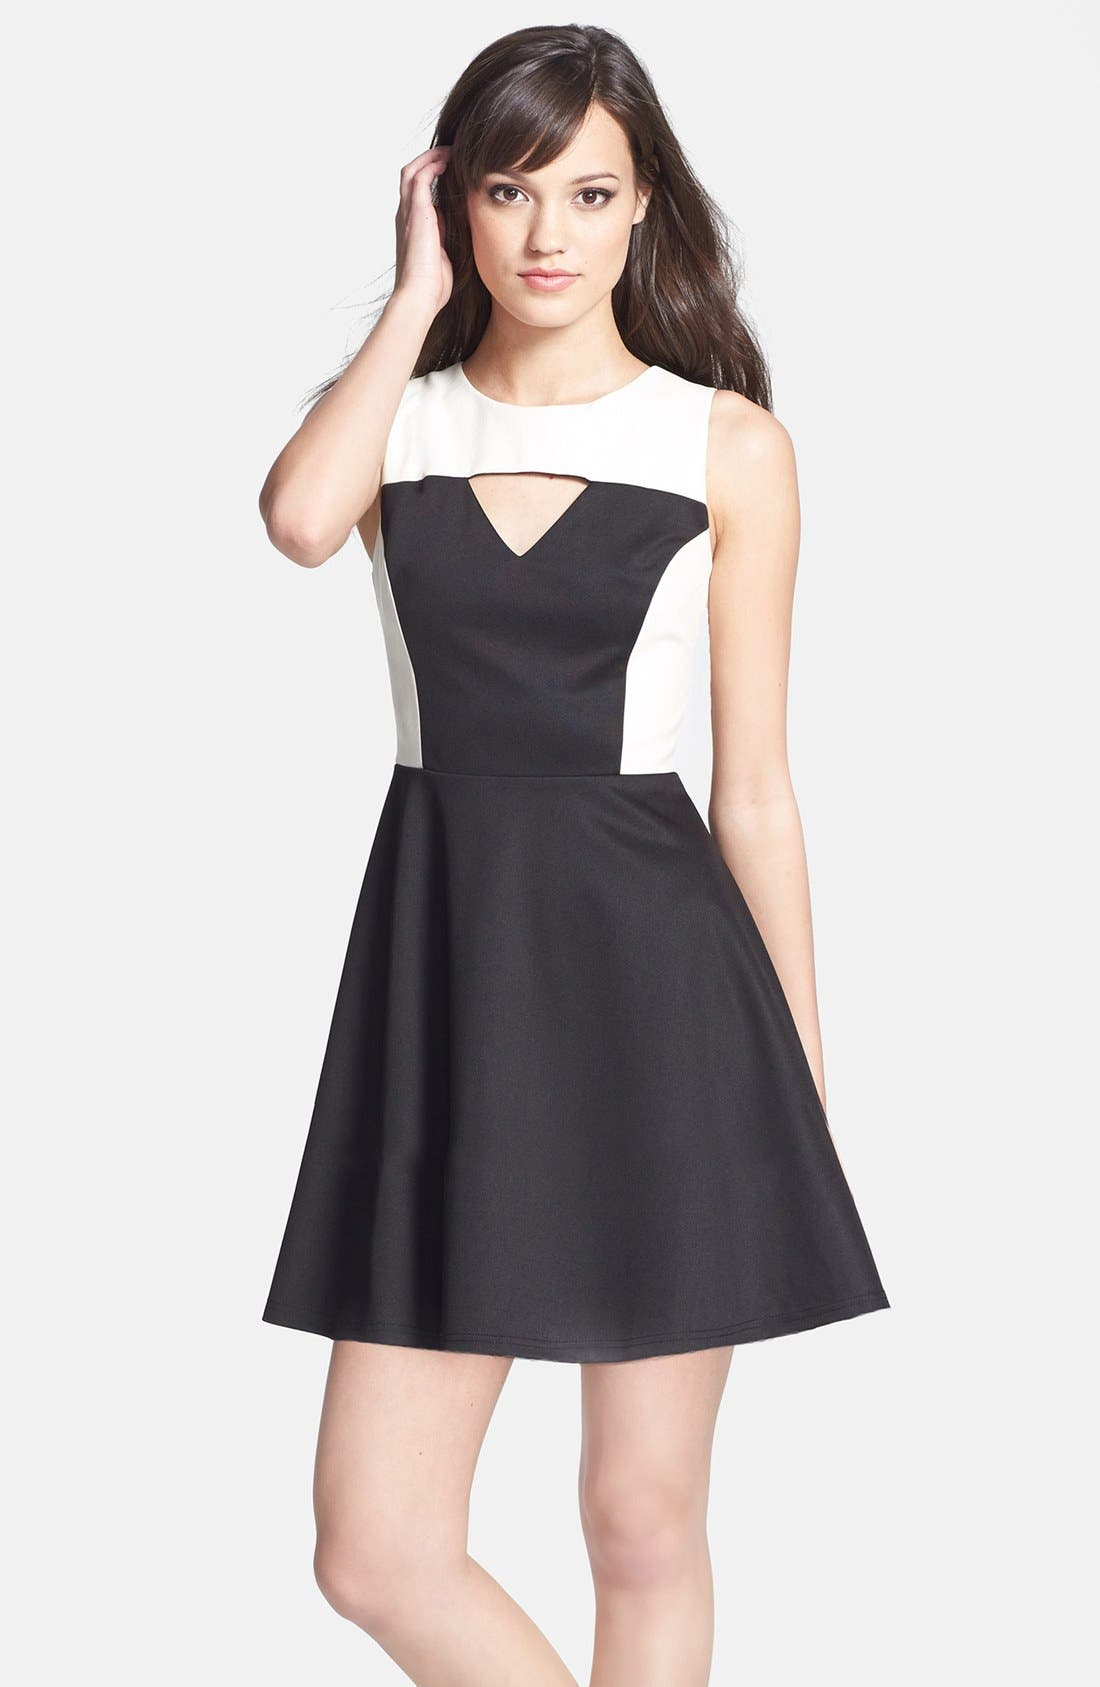 Alternate Image 1 Selected - MM Couture Cutout Faux Leather Contrast Ponte Knit Fit & Flare Dress